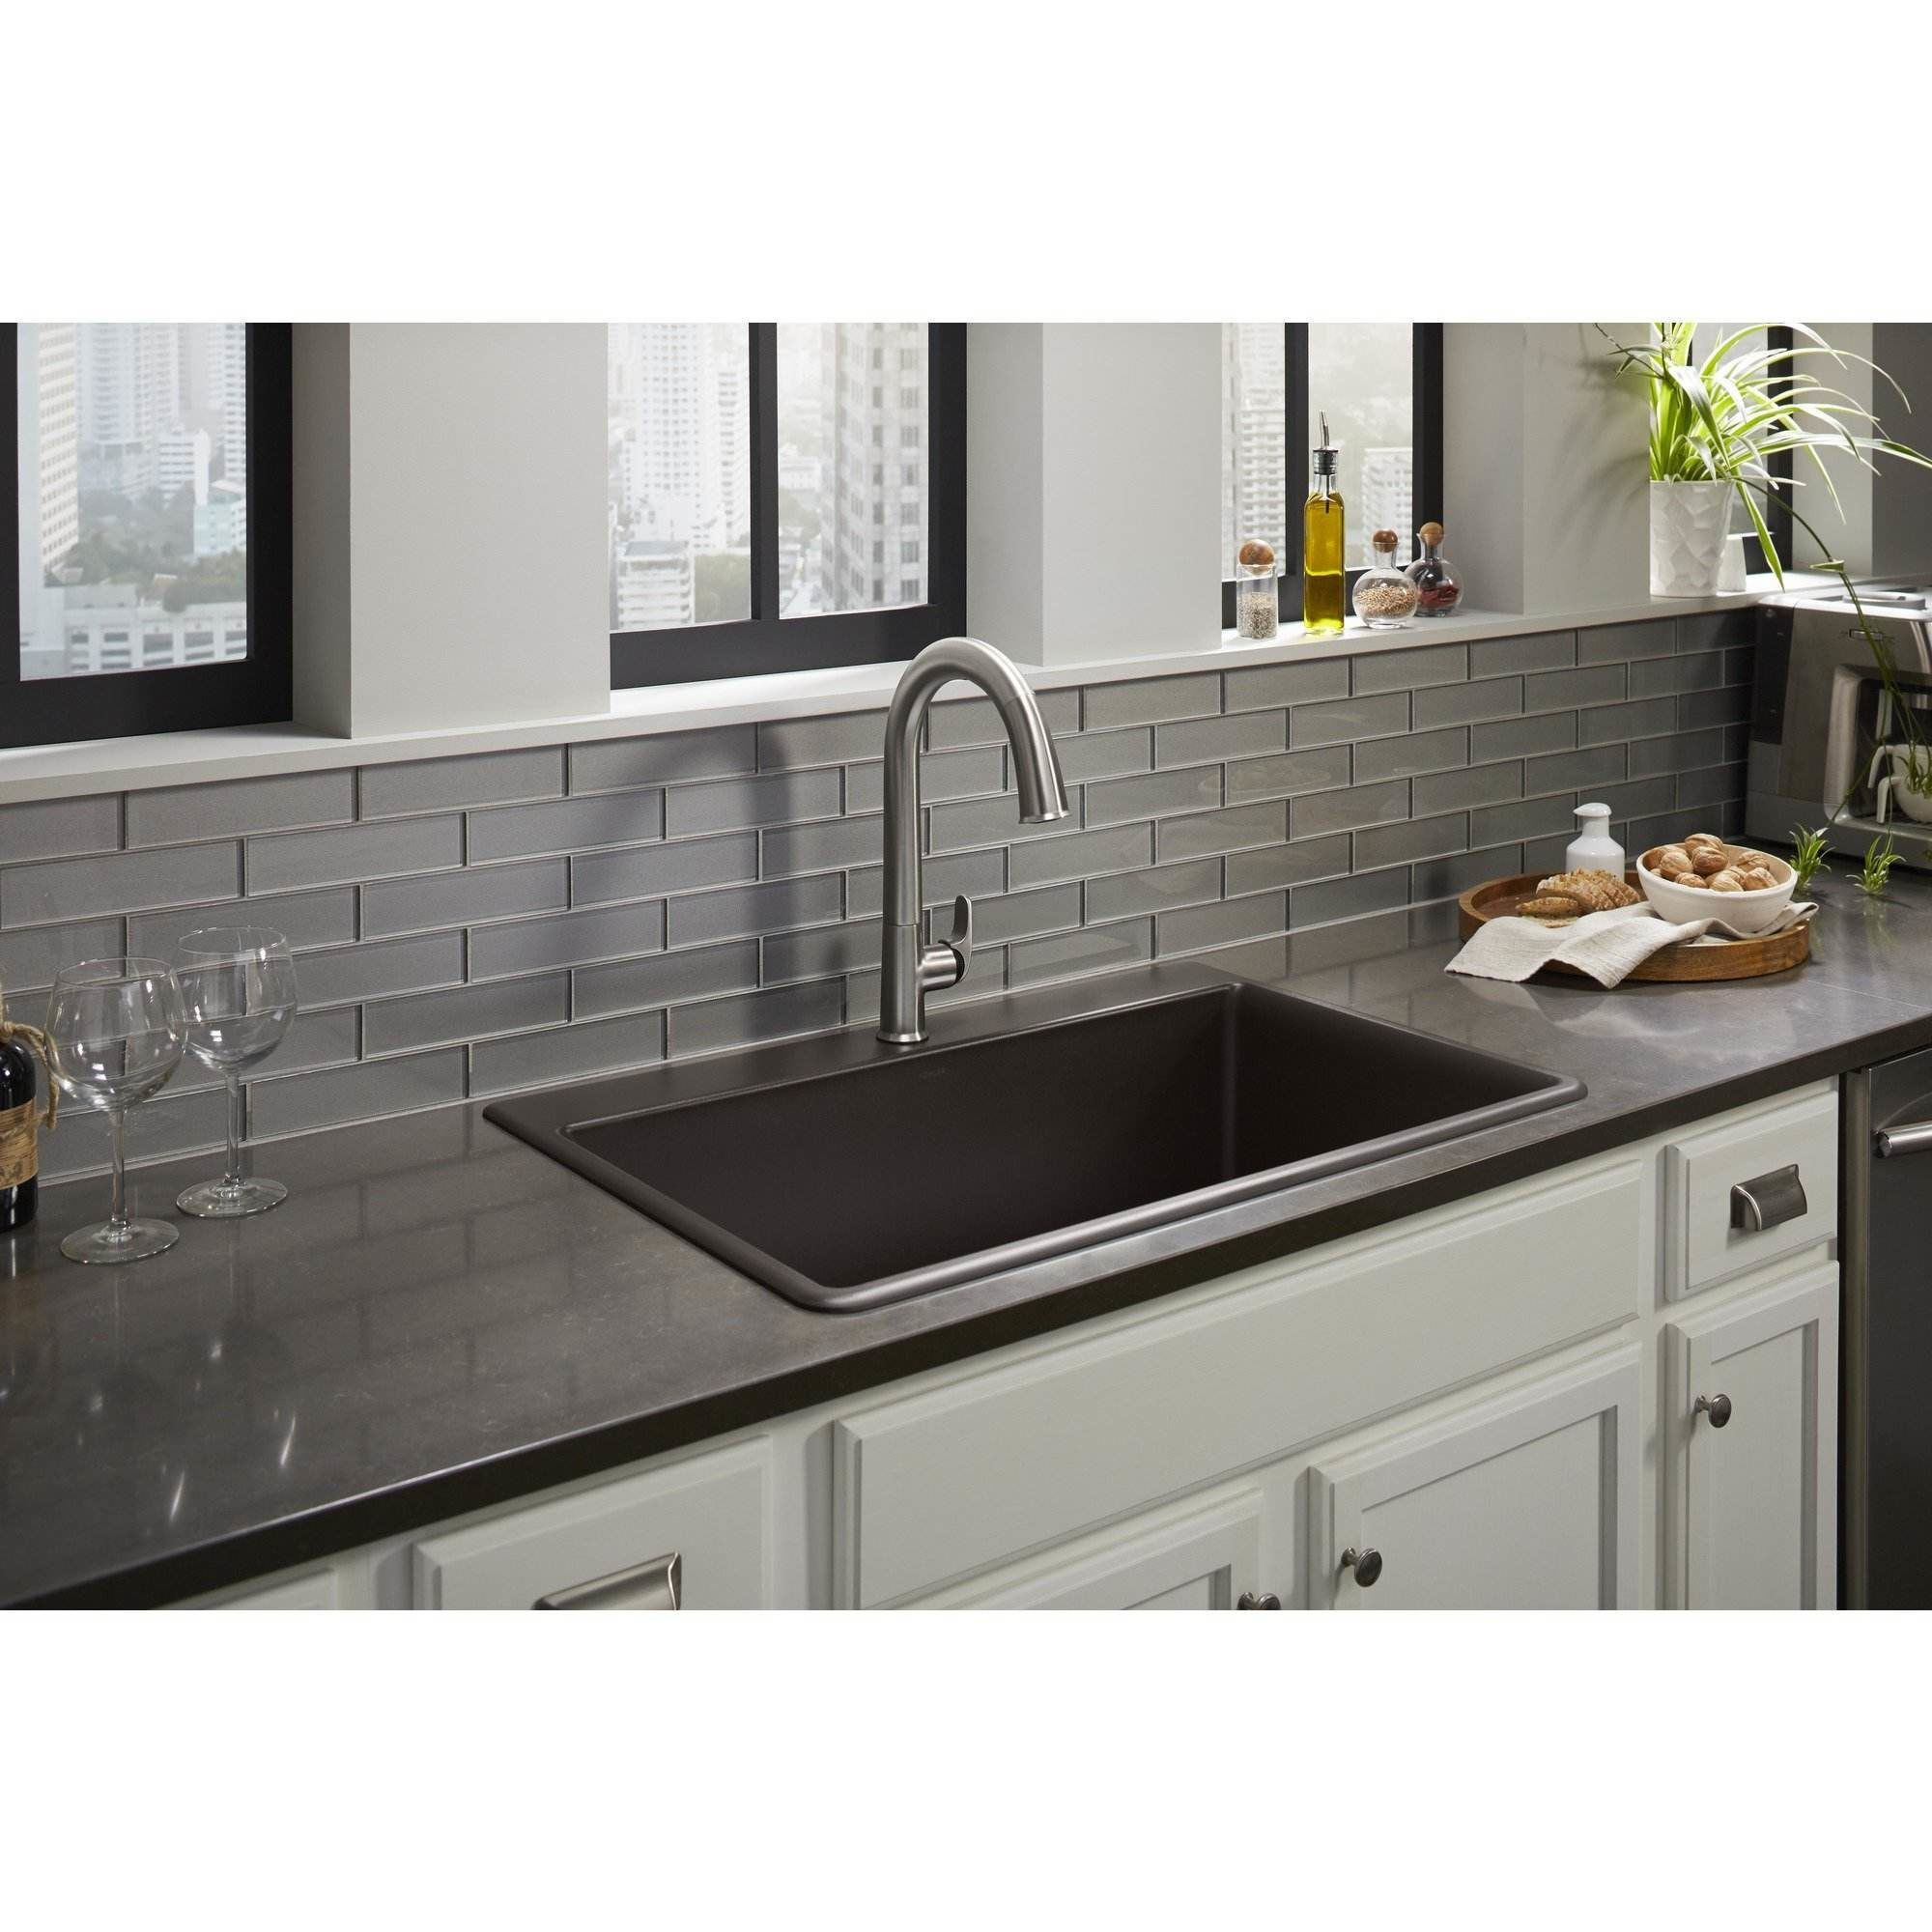 kohler kitchen sinks home depot tall table sets black sink tyres2c